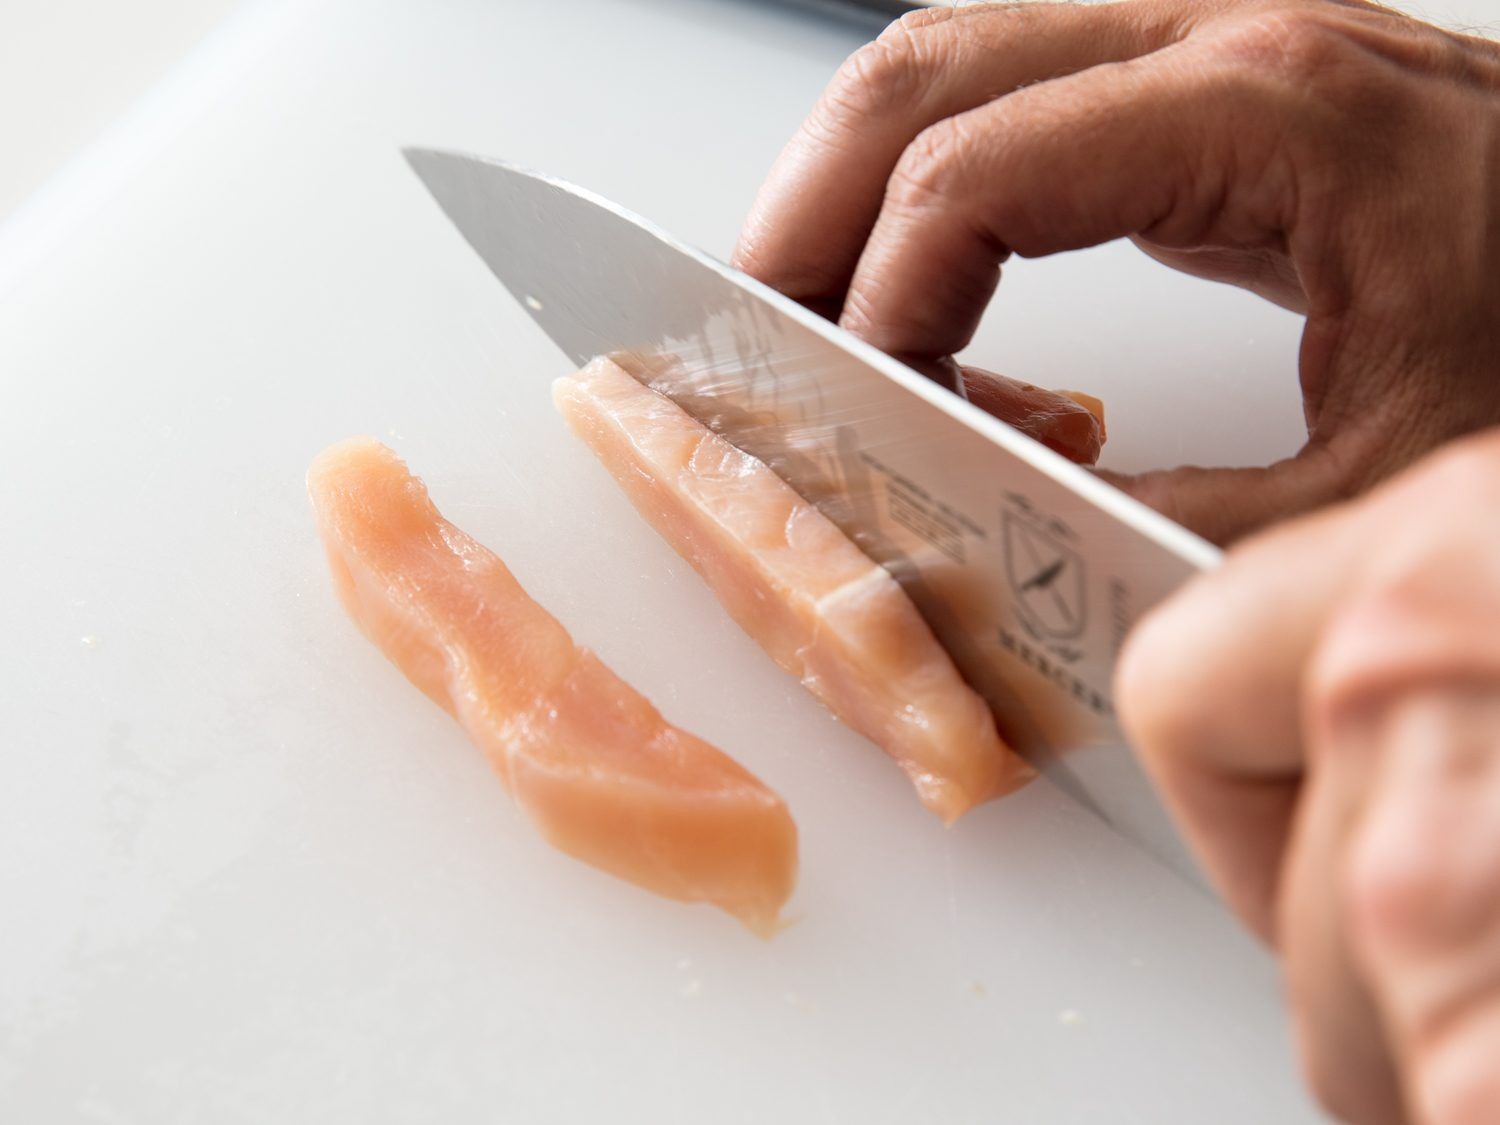 A knife slicing against the muscle grain of a chicken breast to create larger slices, which in turn will be diced into cubes, for stir-frying